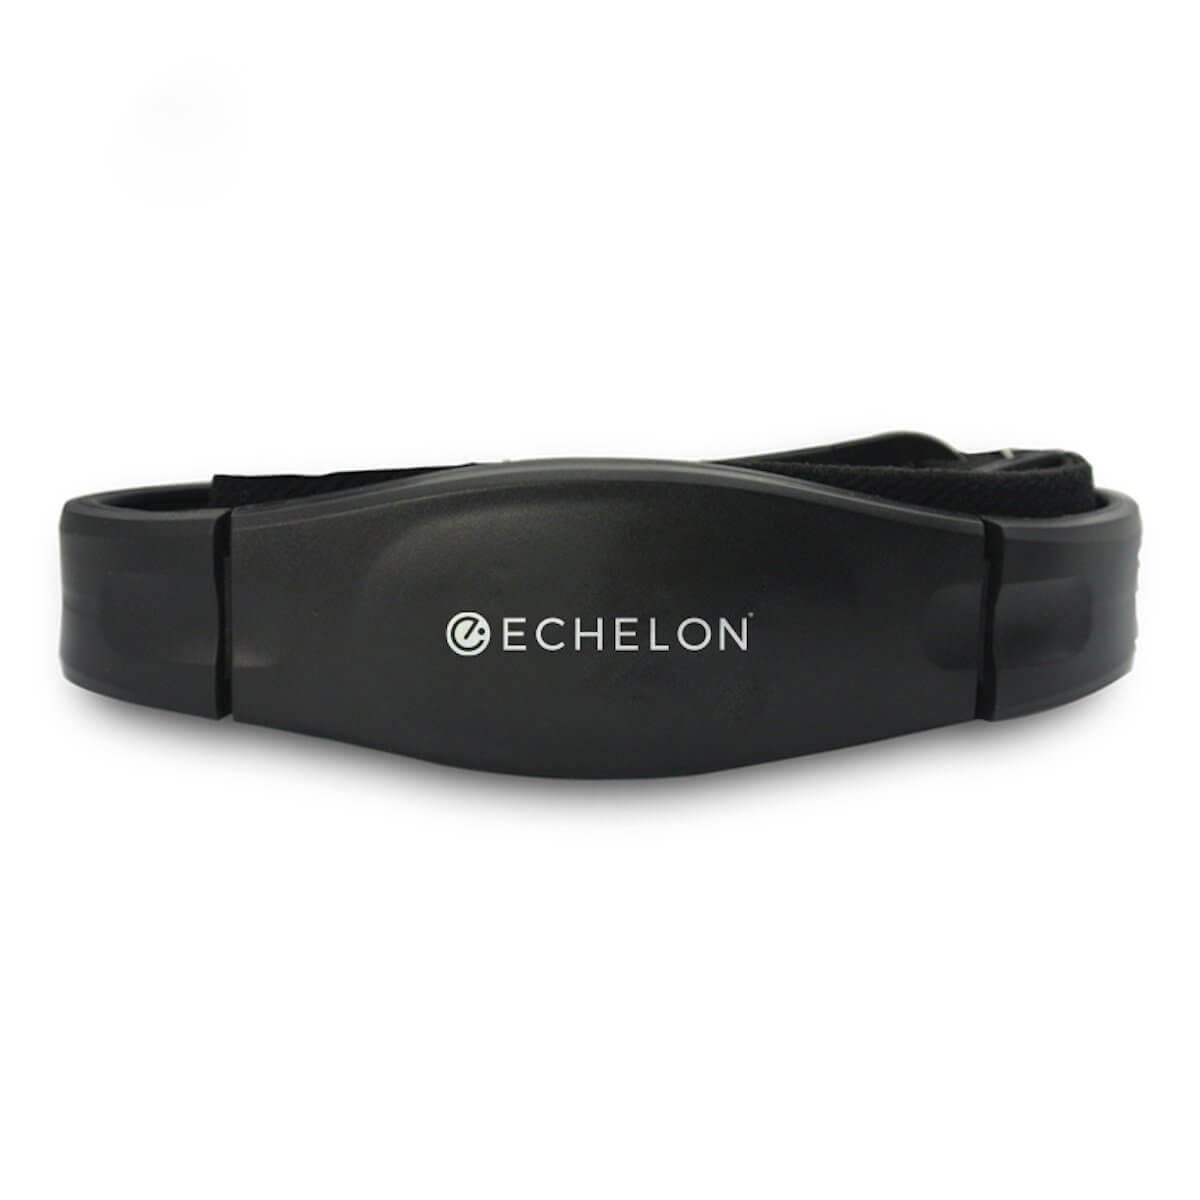 Advanced Chest Heart Monitor - Echelon Fit US